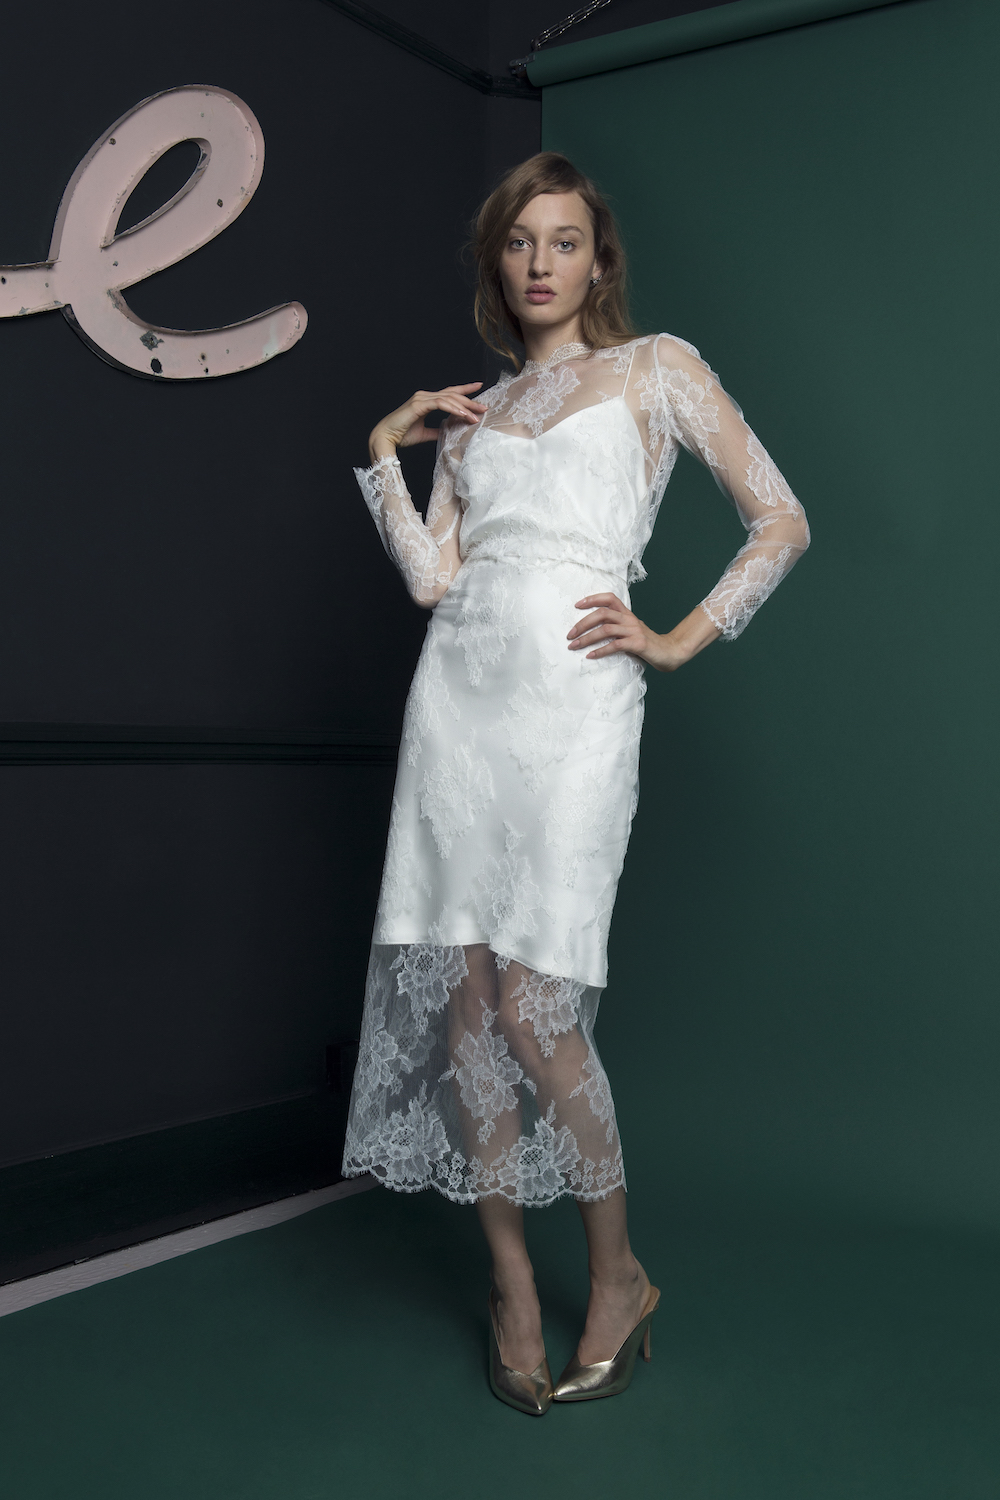 RIVER LACE TOP & SKIRT | WEDDING DRESS BY HALFPENNY LONDON